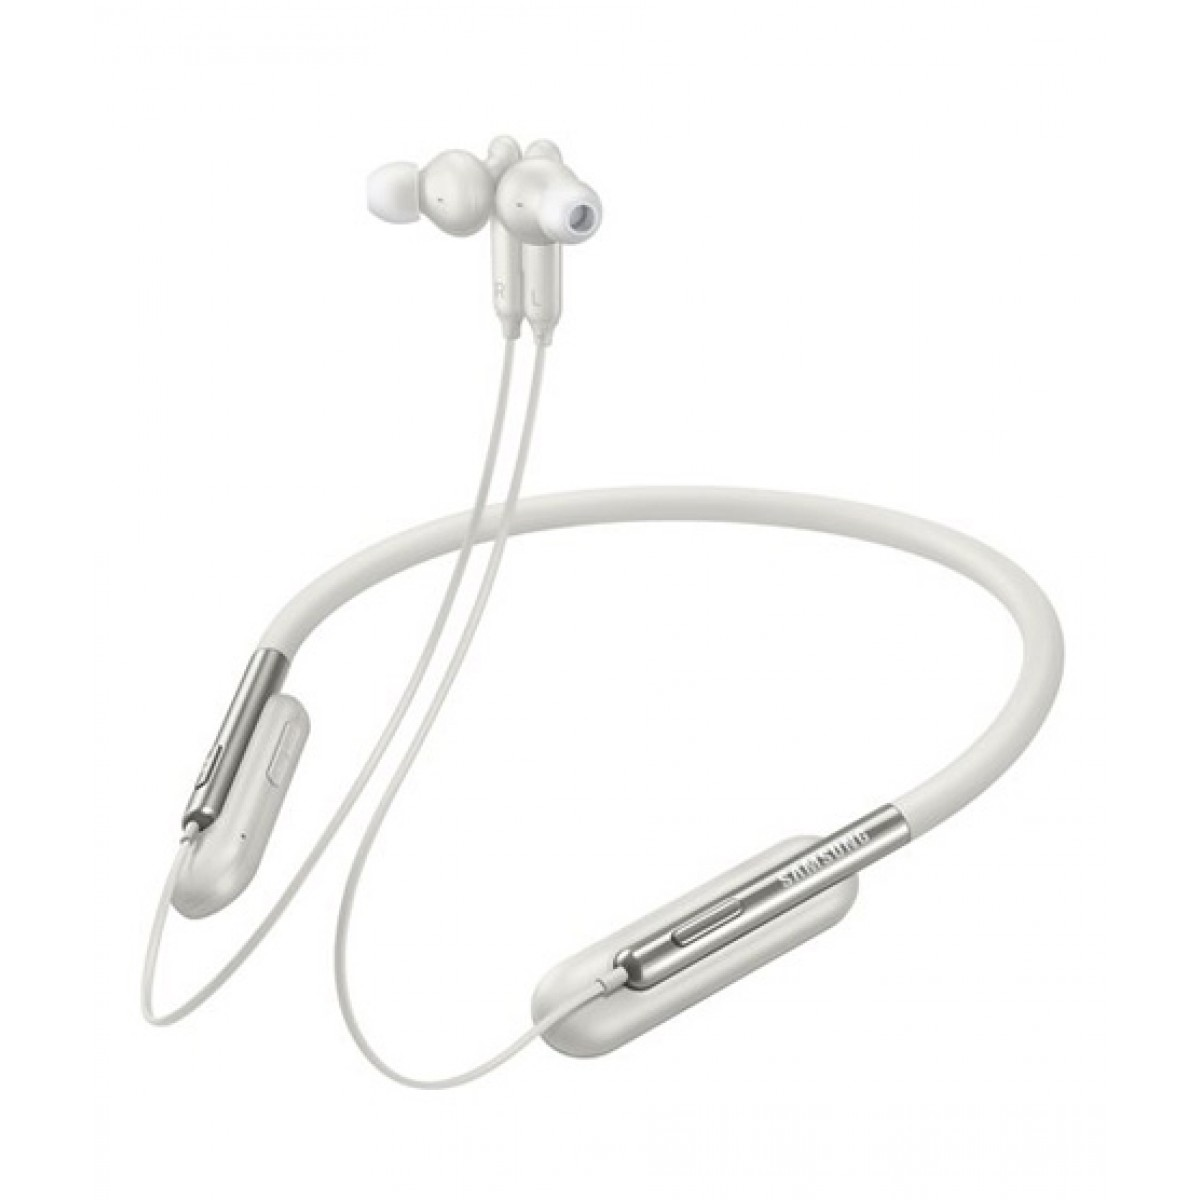 be6f4ee1ba2 Samsung U Flex Wireless Headphones Price in Pakistan | Buy Samsung U Flex  Wireless Headphones White (EO-BG950) | iShopping.pk